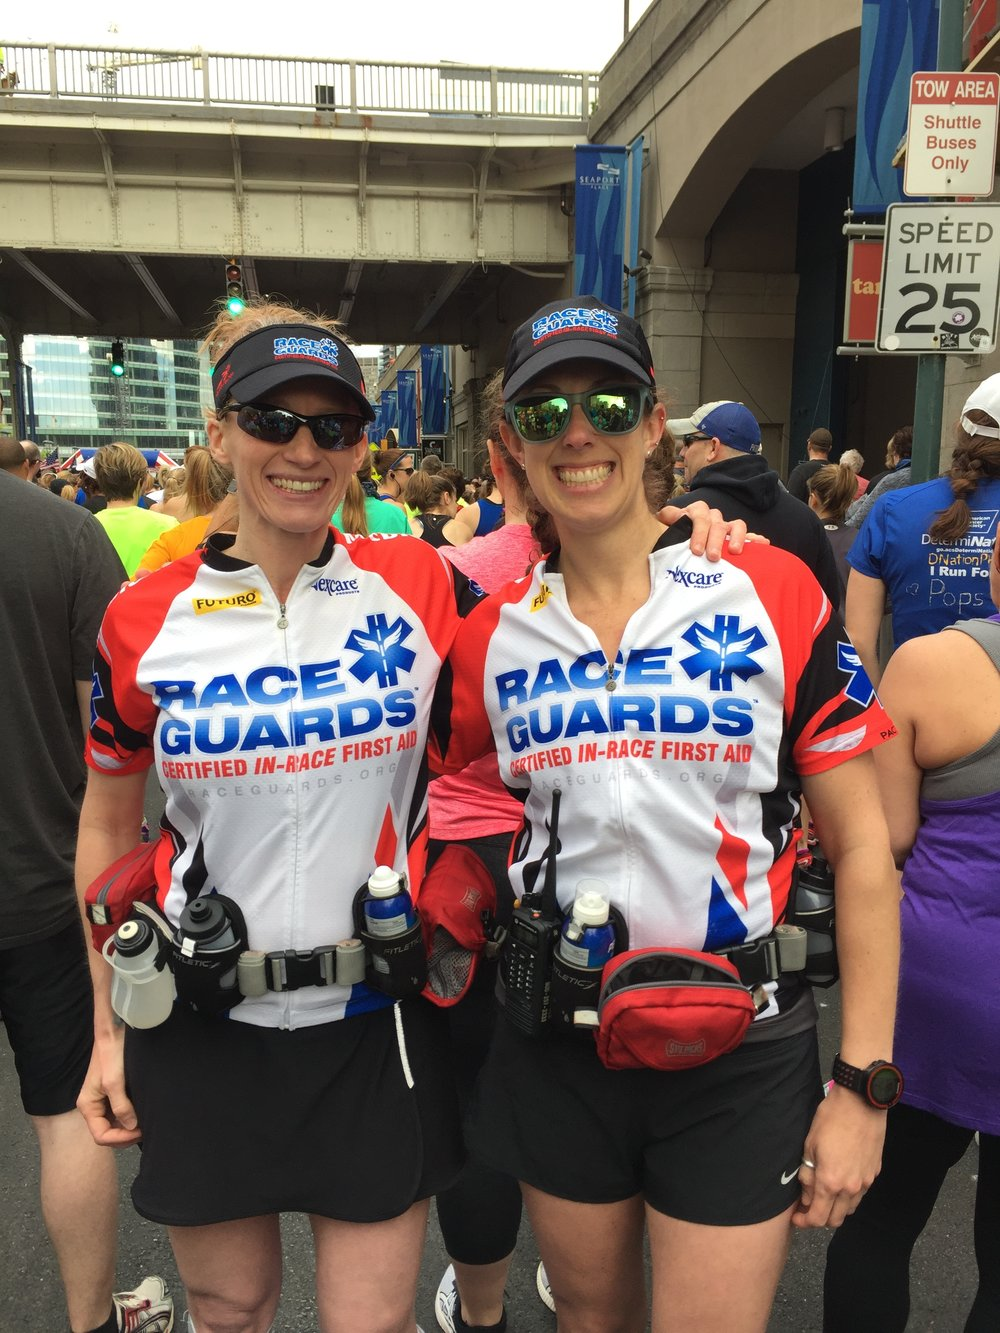 Lisa Klinkenberg (left) and her Race Guards partner